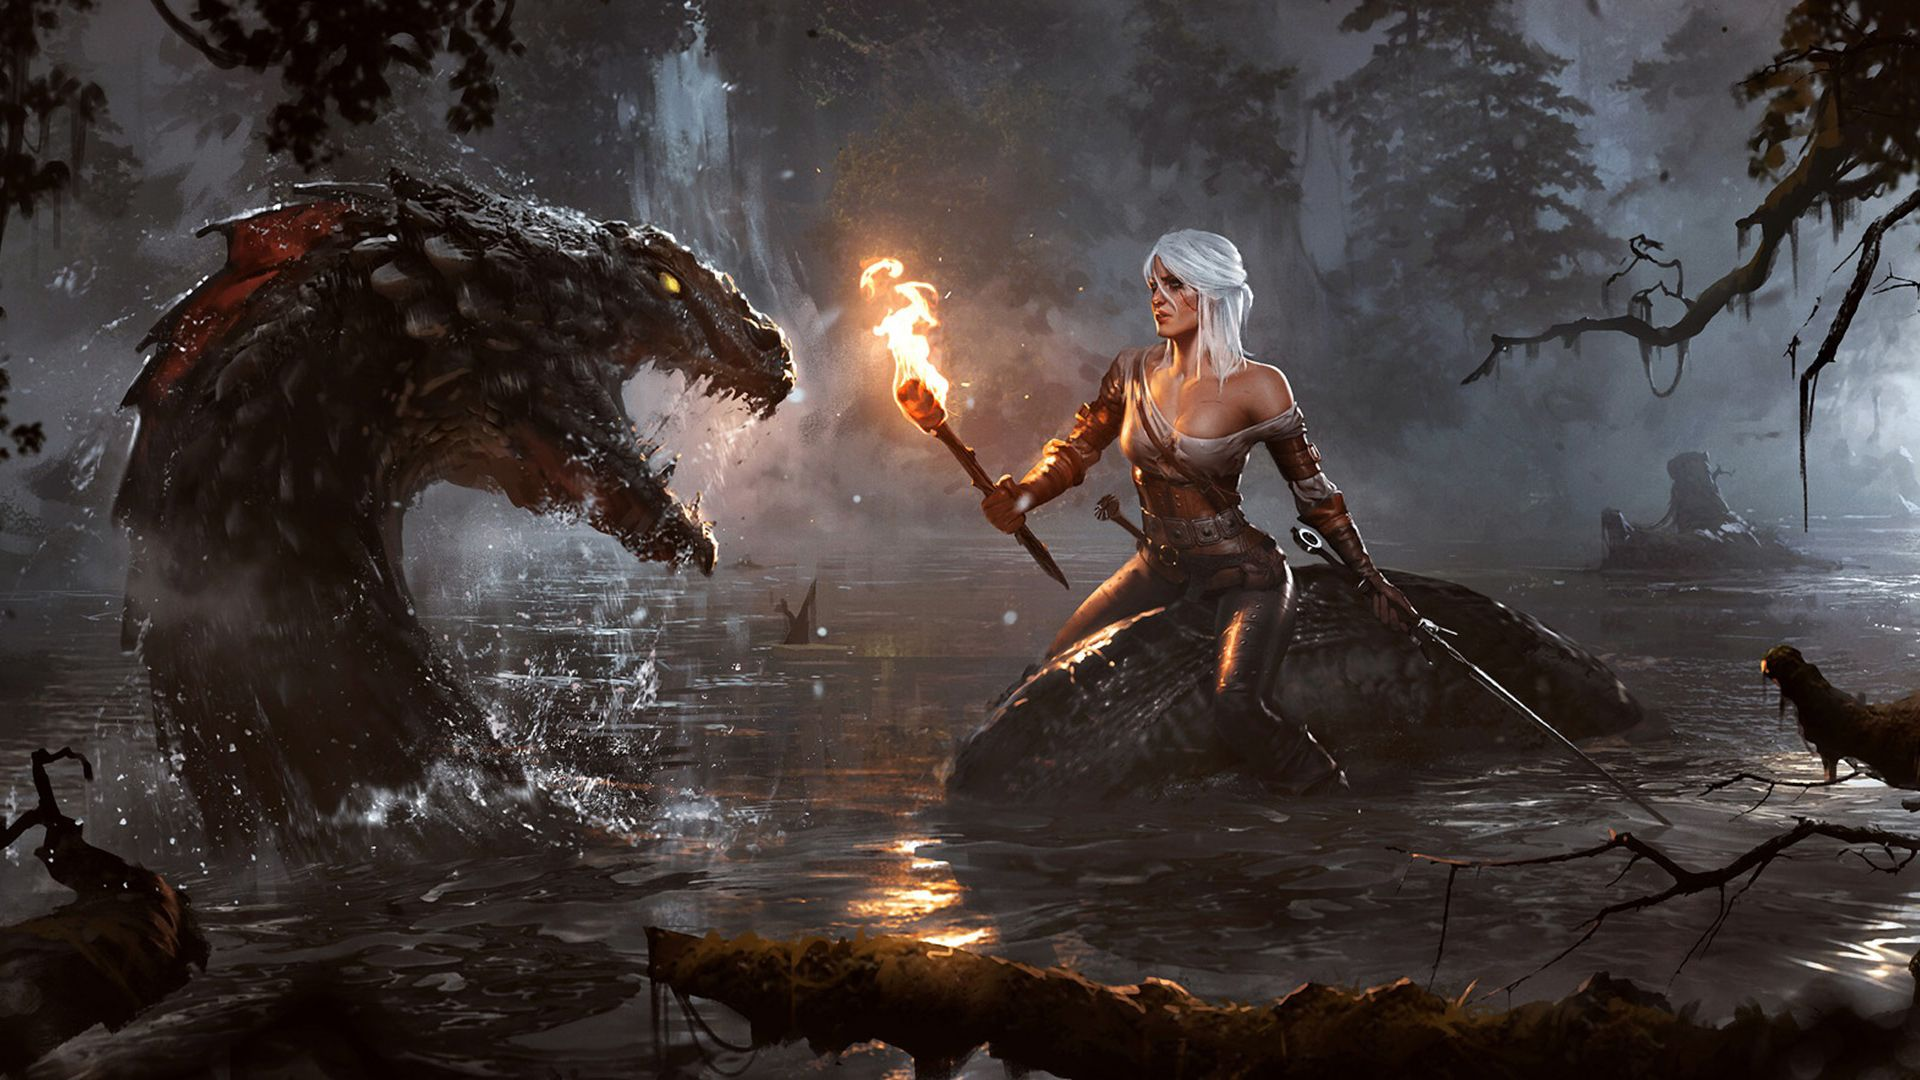 The Witcher 1920x1080 Wallpapers Top Free The Witcher 1920x1080 Backgrounds Wallpaperaccess